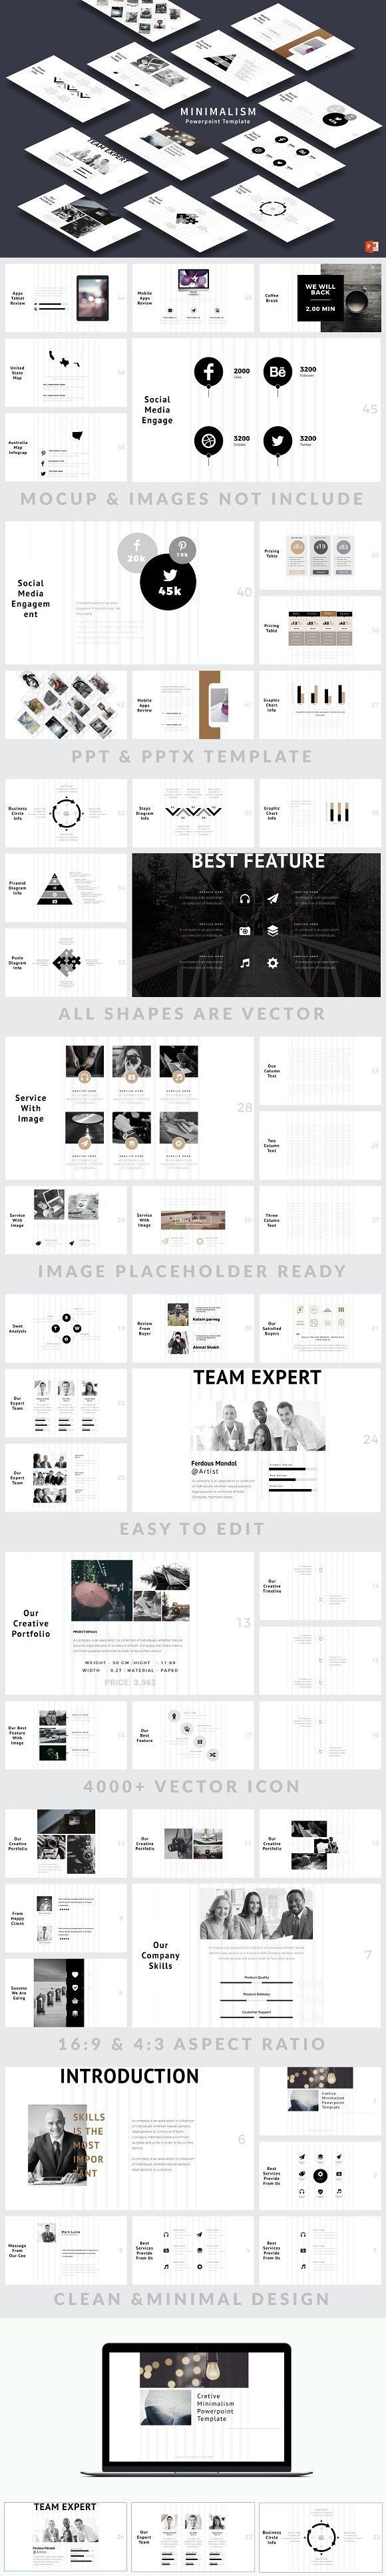 best 25+ power point templates ideas on pinterest | power point, Modern powerpoint